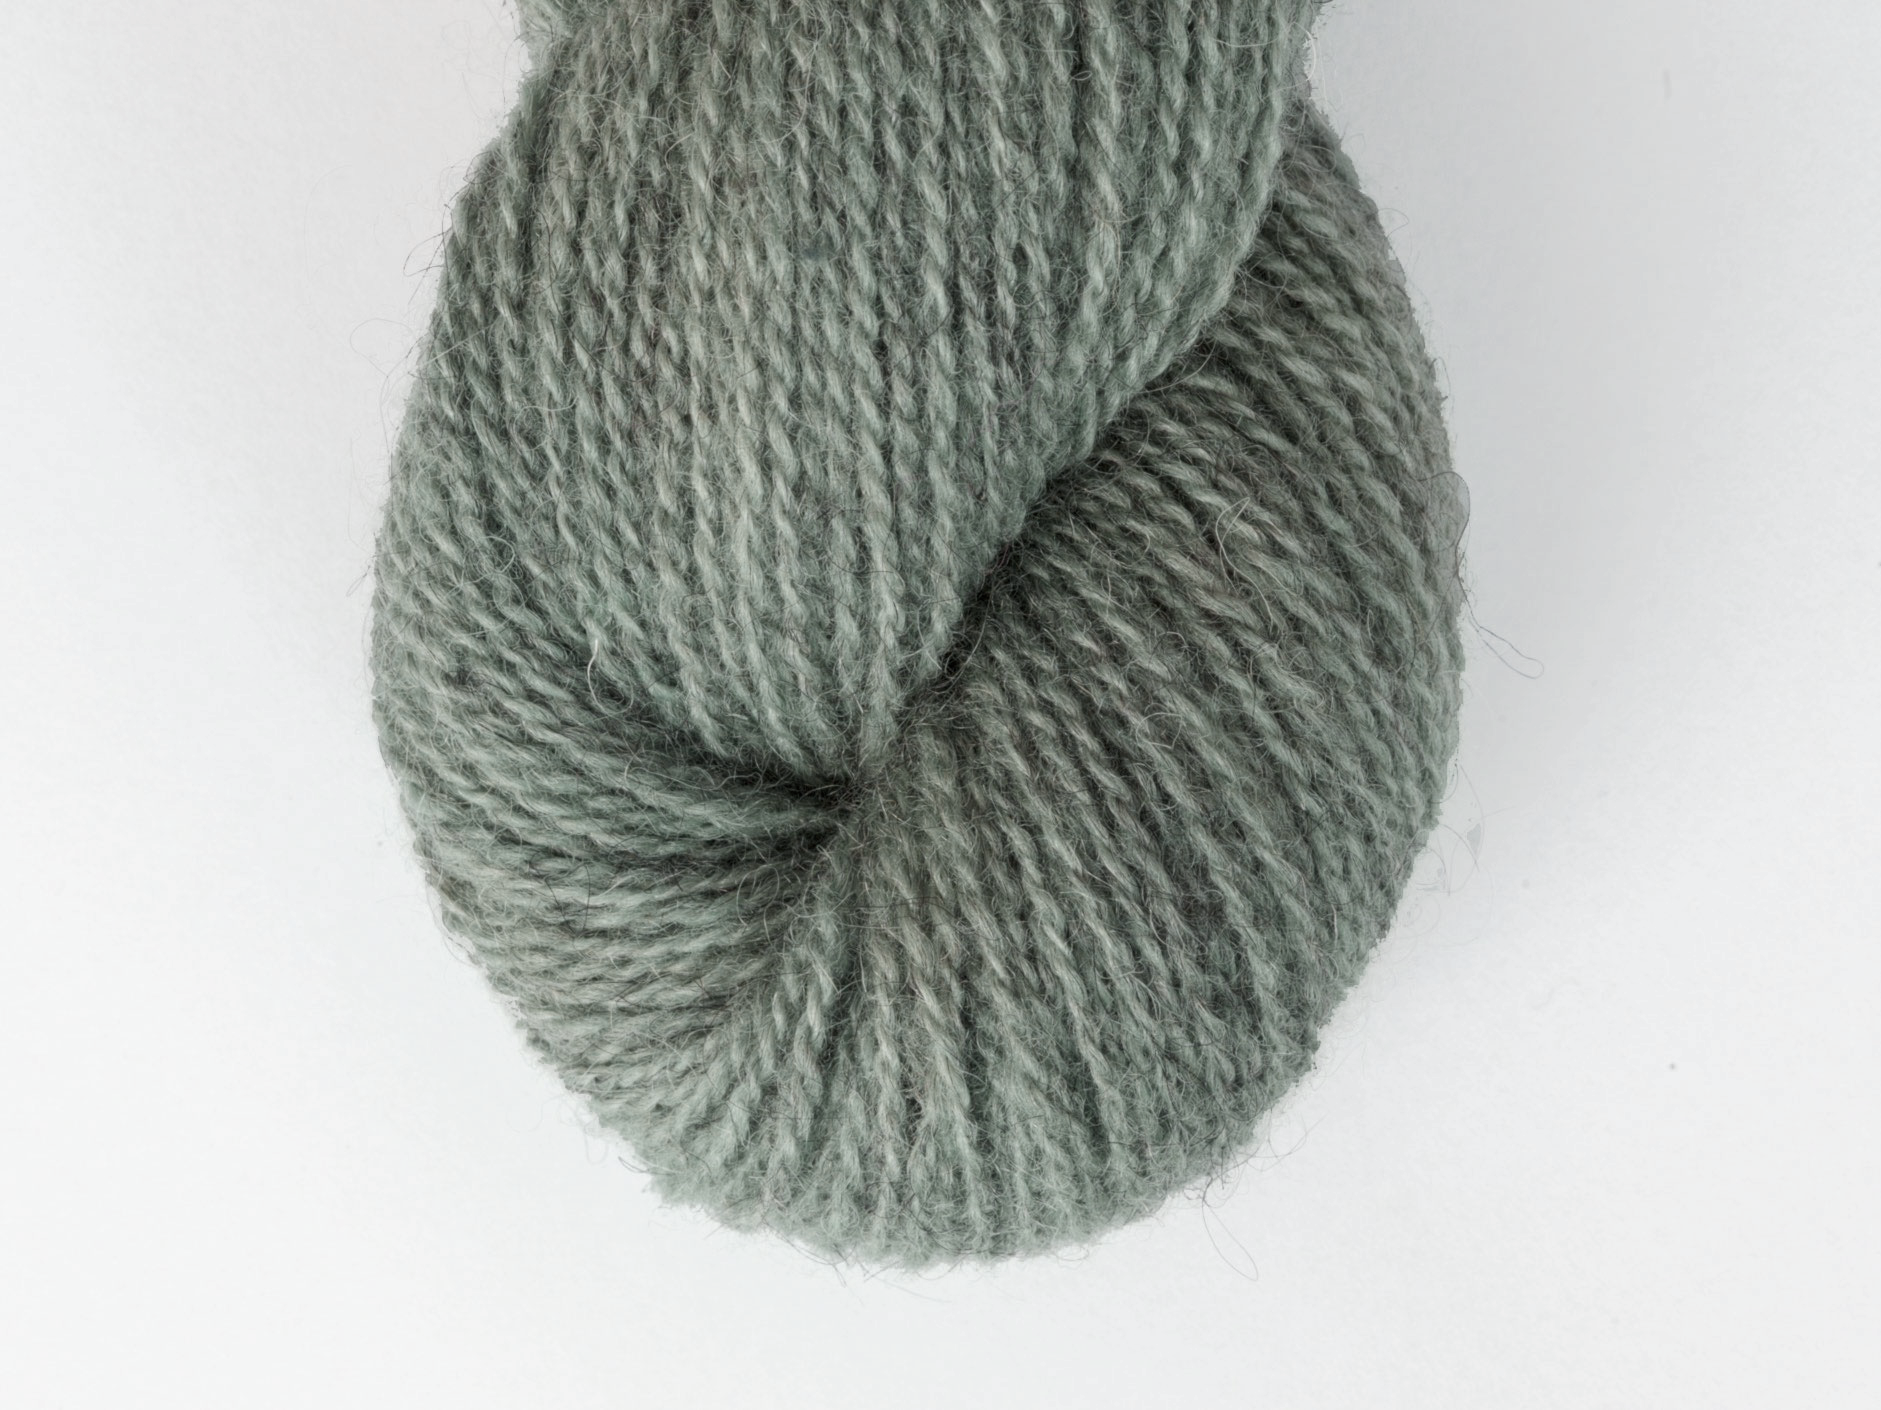 Bohus Stickning garn yarn BS 114 wool gray-green